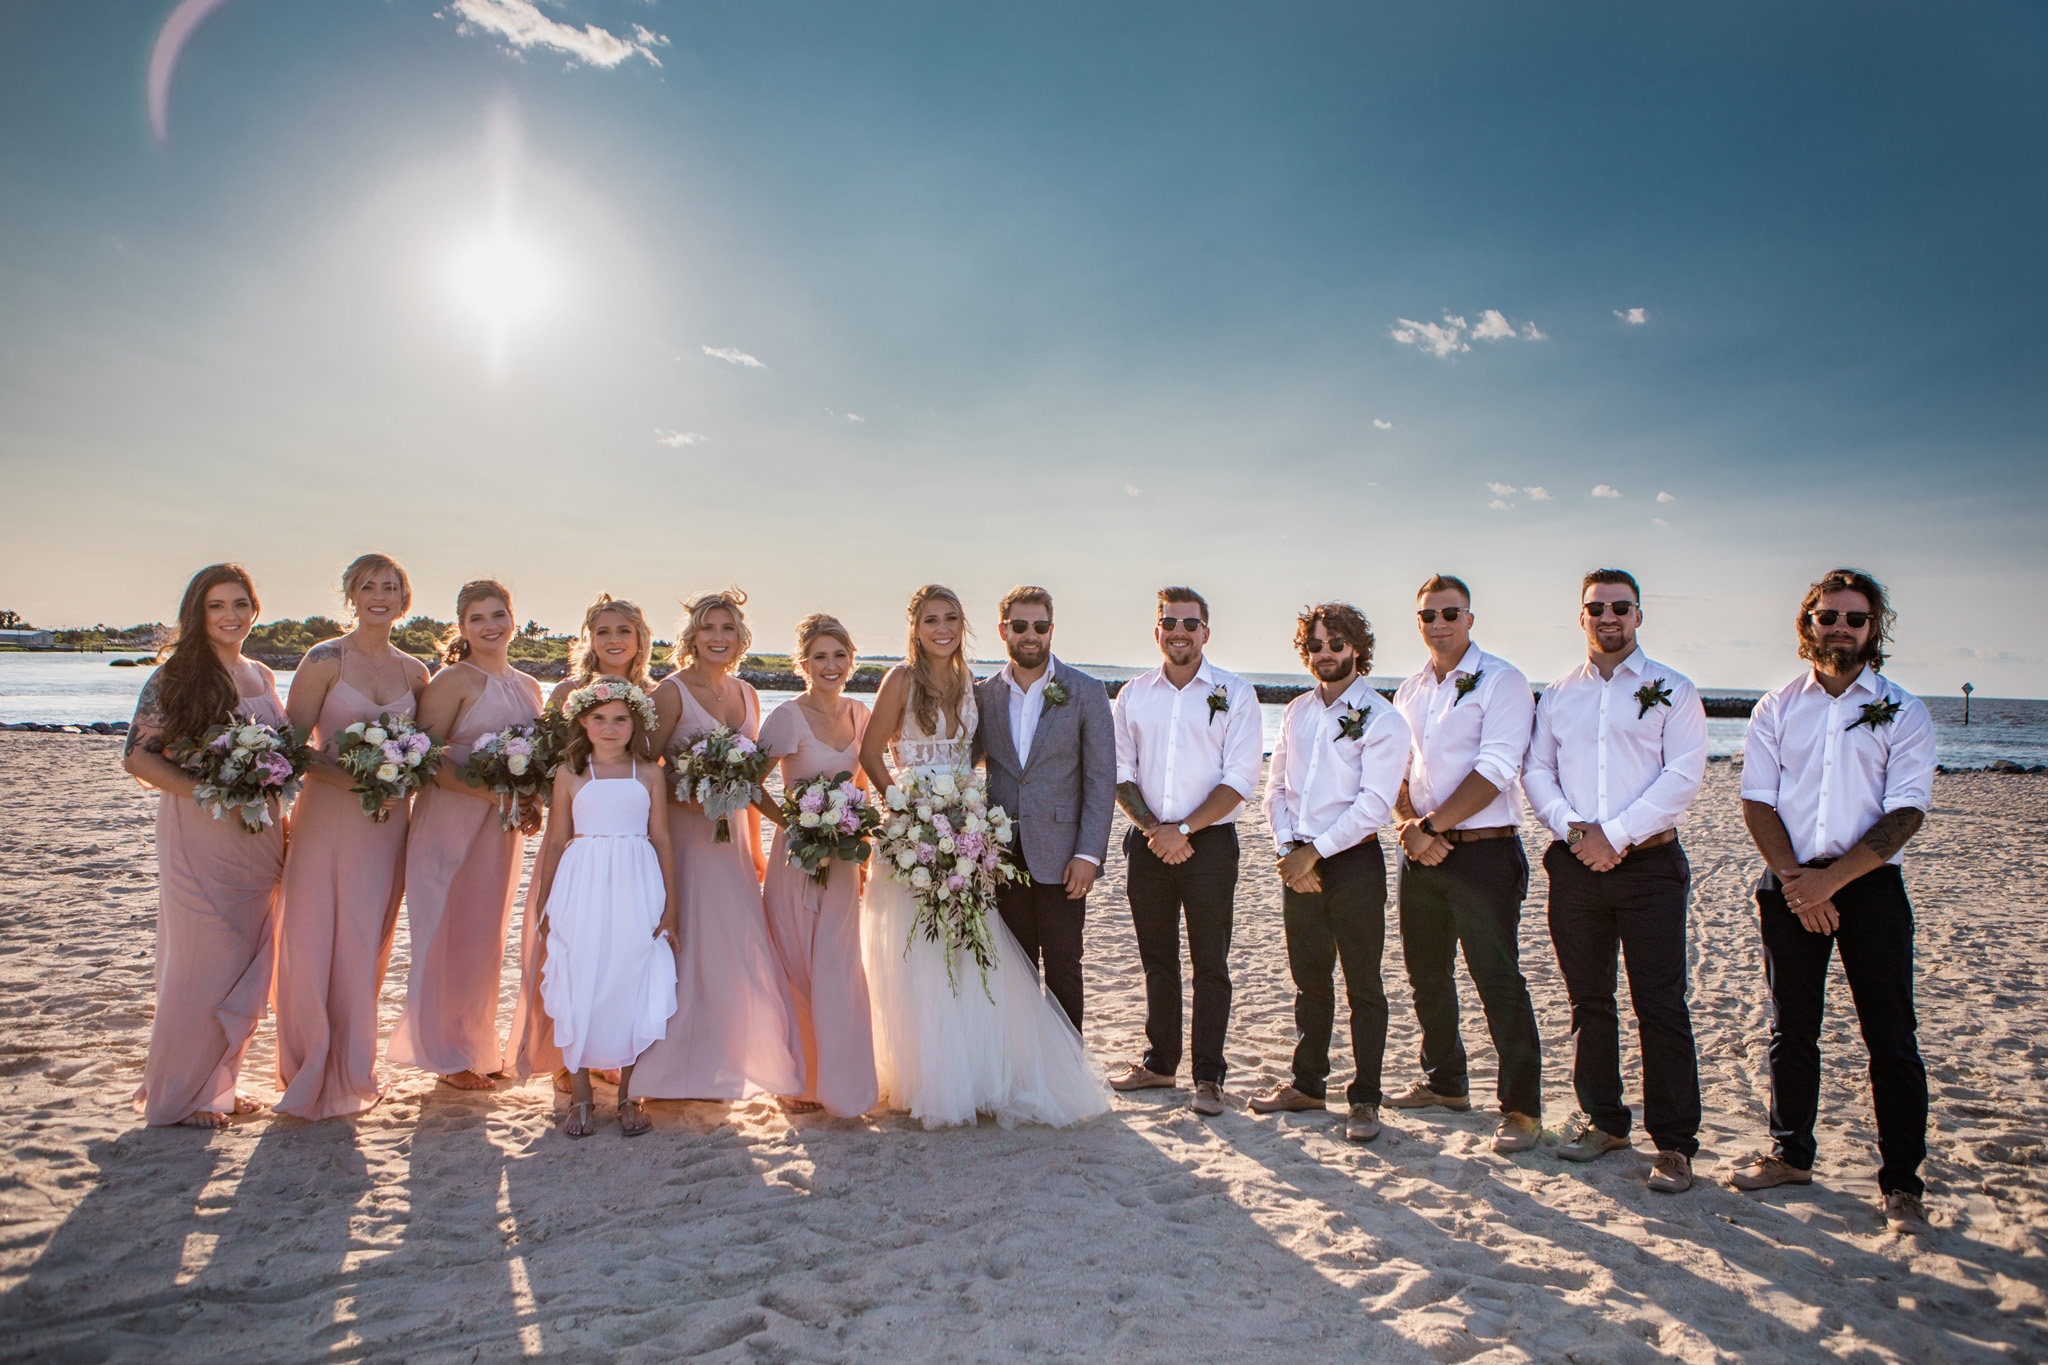 The wedding party look STUNNING.